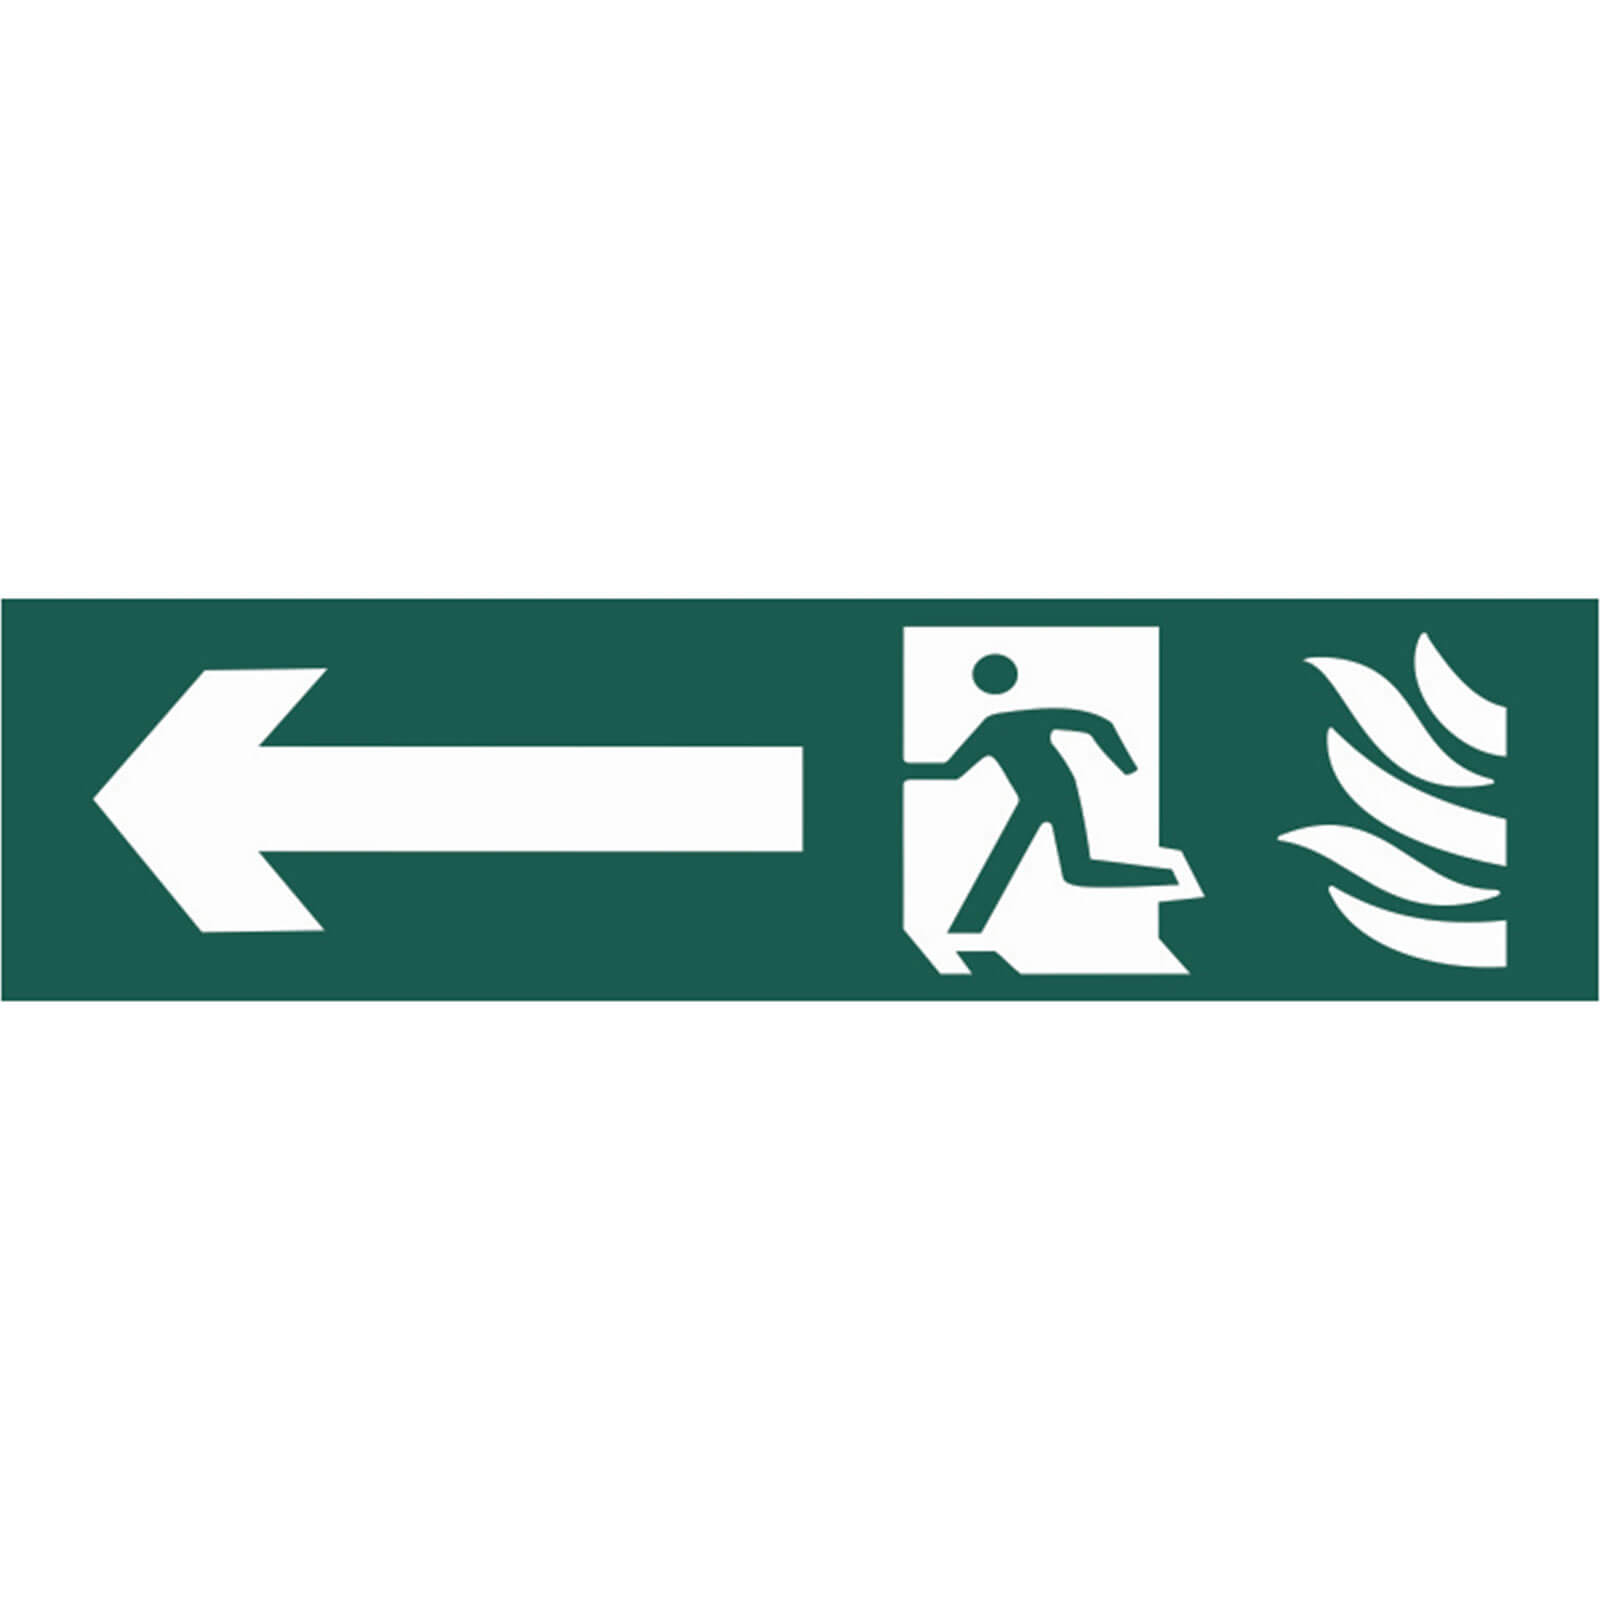 Tooled Up/Safety & Workwear/Safety/Scan 200 x 50mm PVC Sign - Running Man Arrow Left